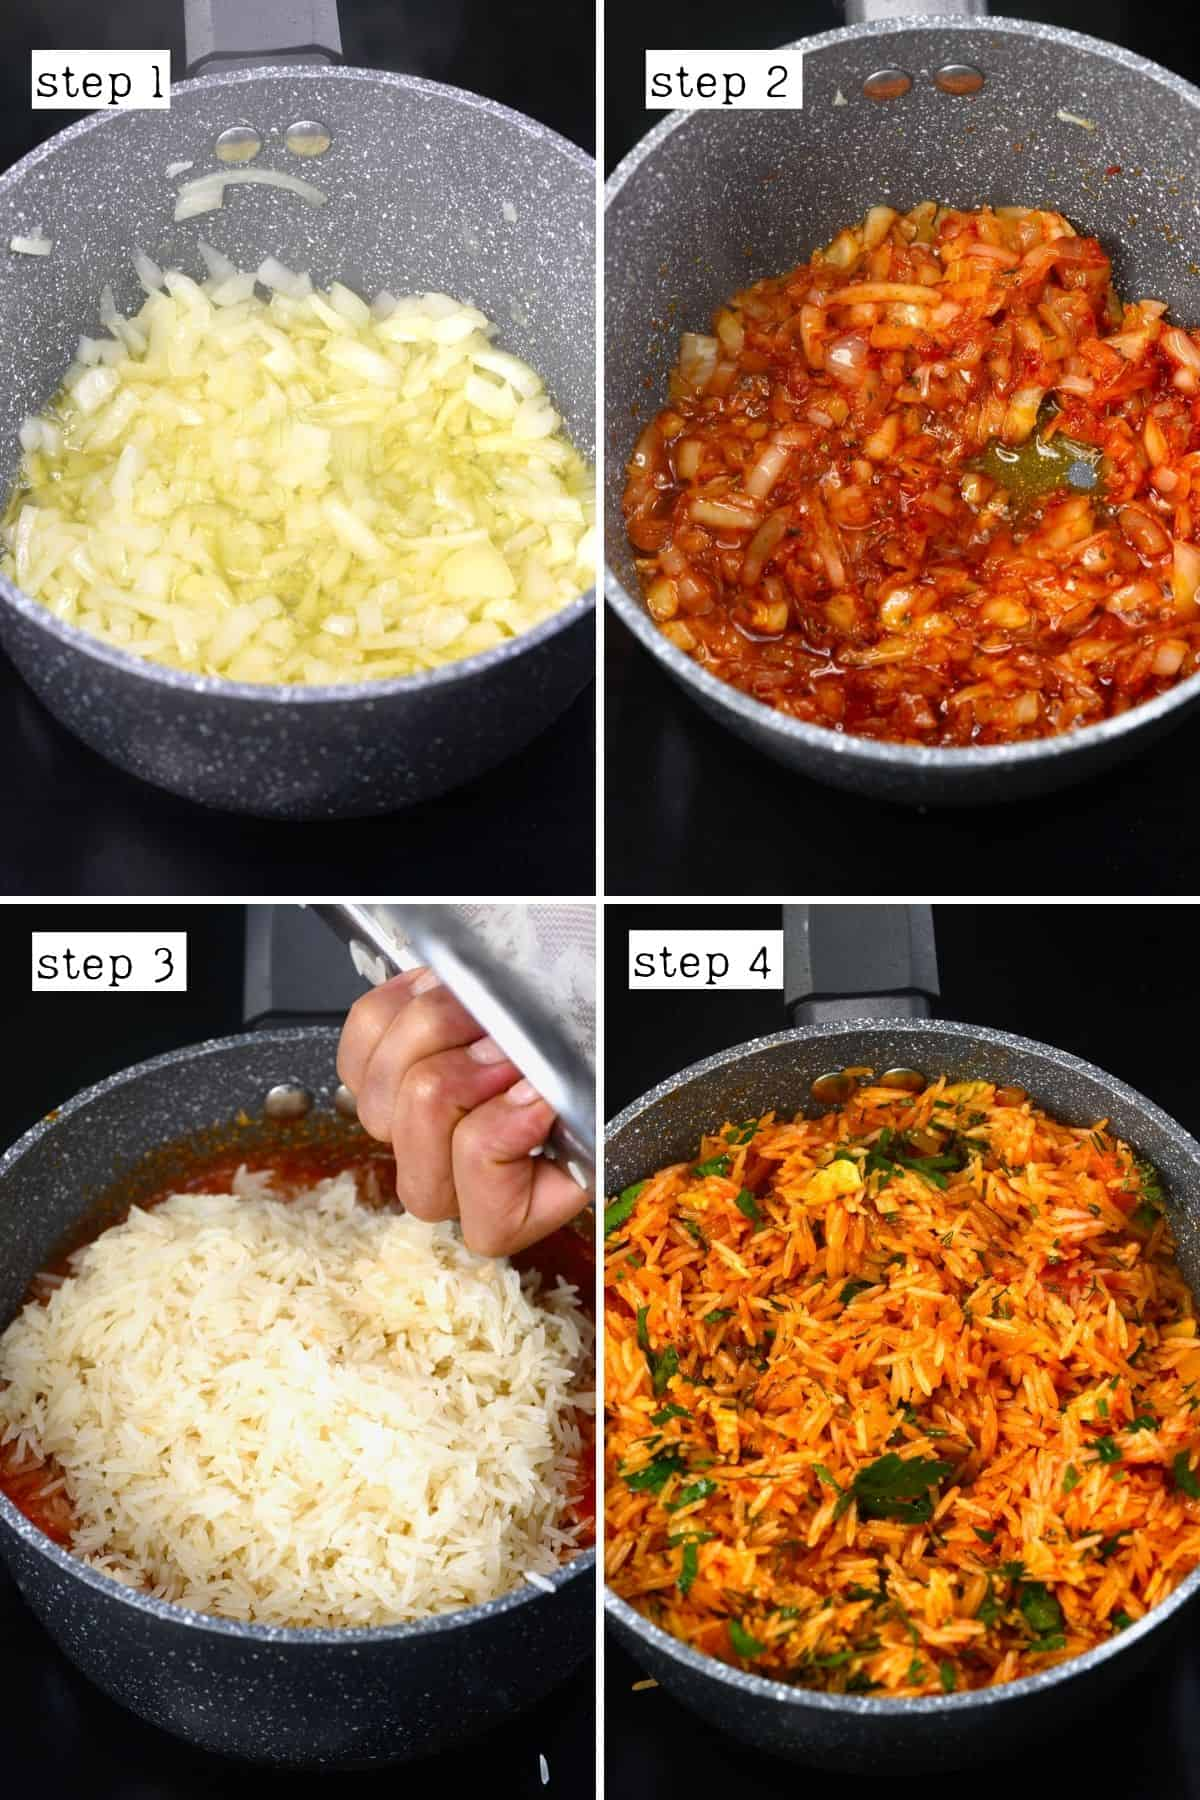 Steps for cooking rice for stuffed veggies